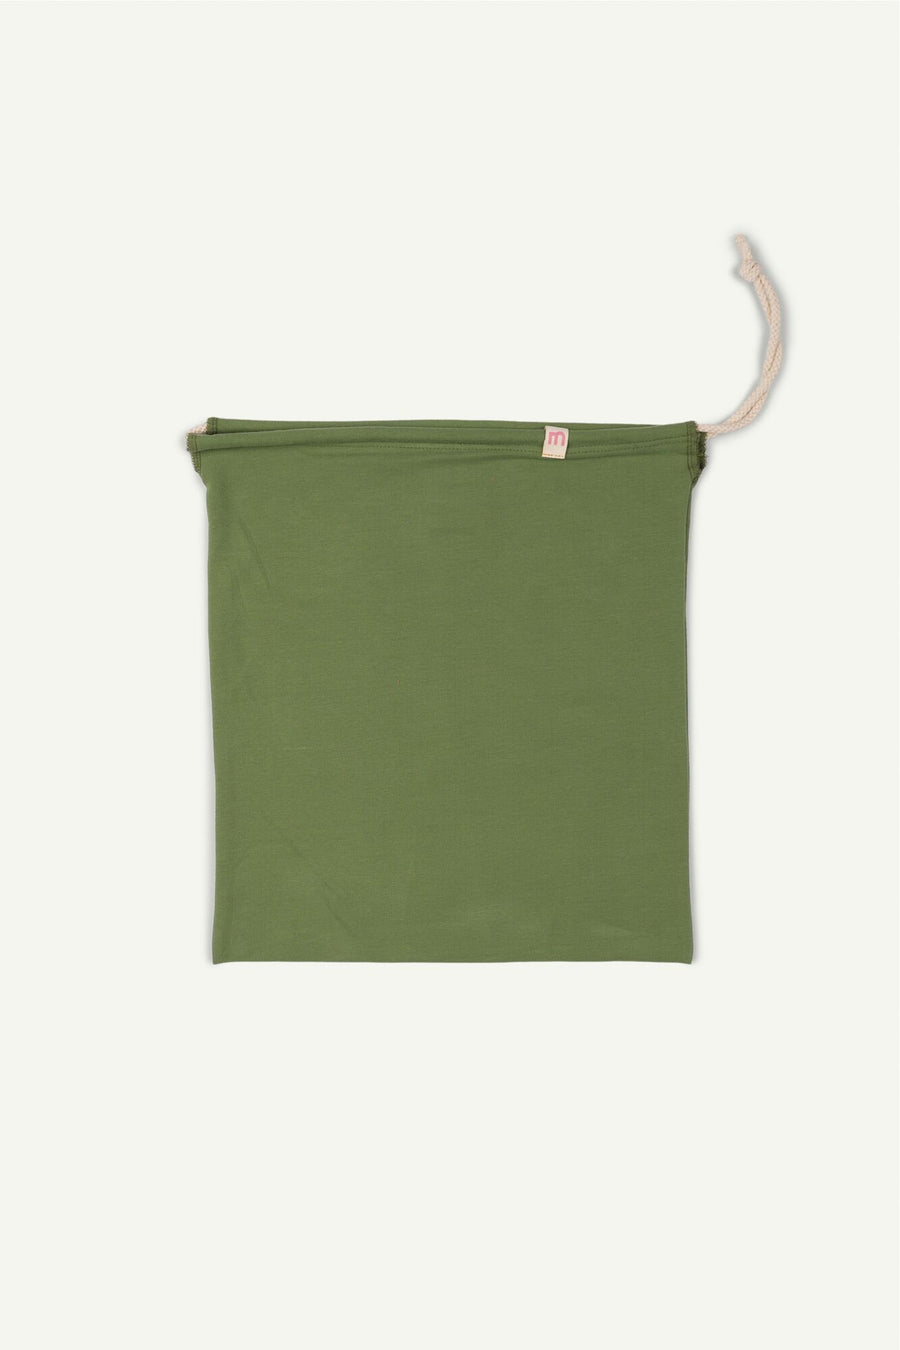 Green Drawstring Bag